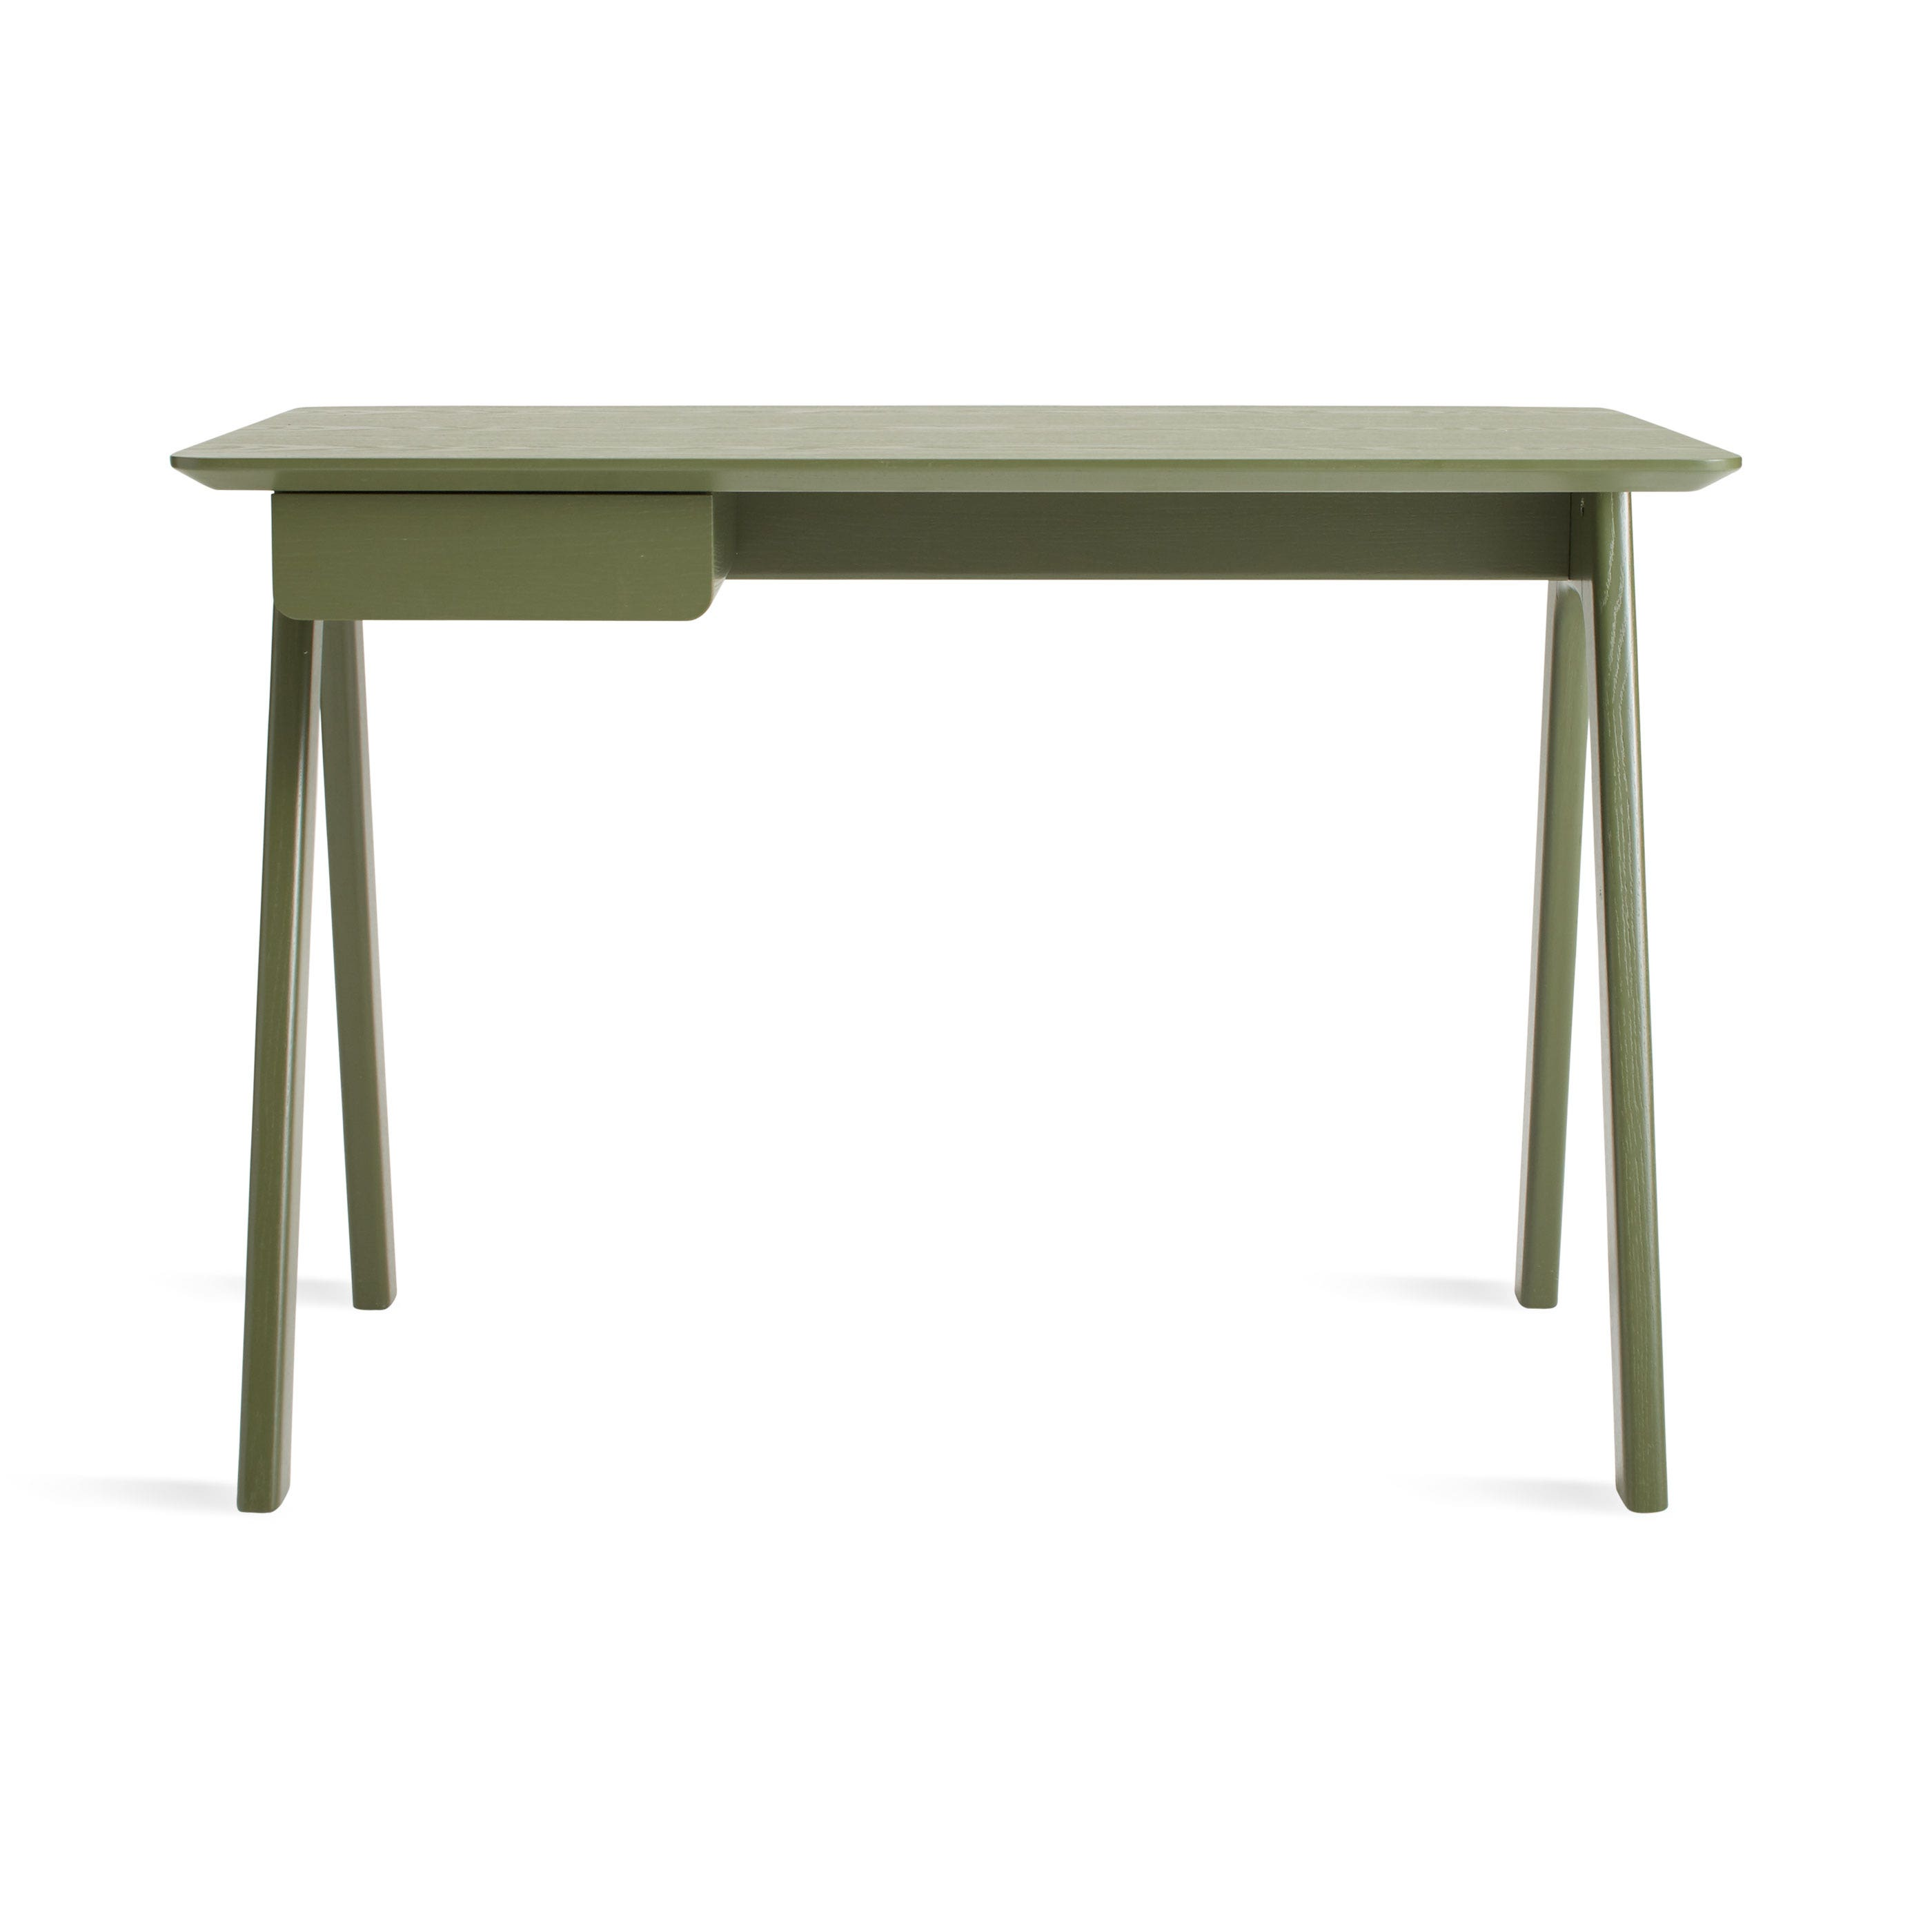 stash writing desk  modern writing desk  blu dot - previous image stash desk  olive on ash